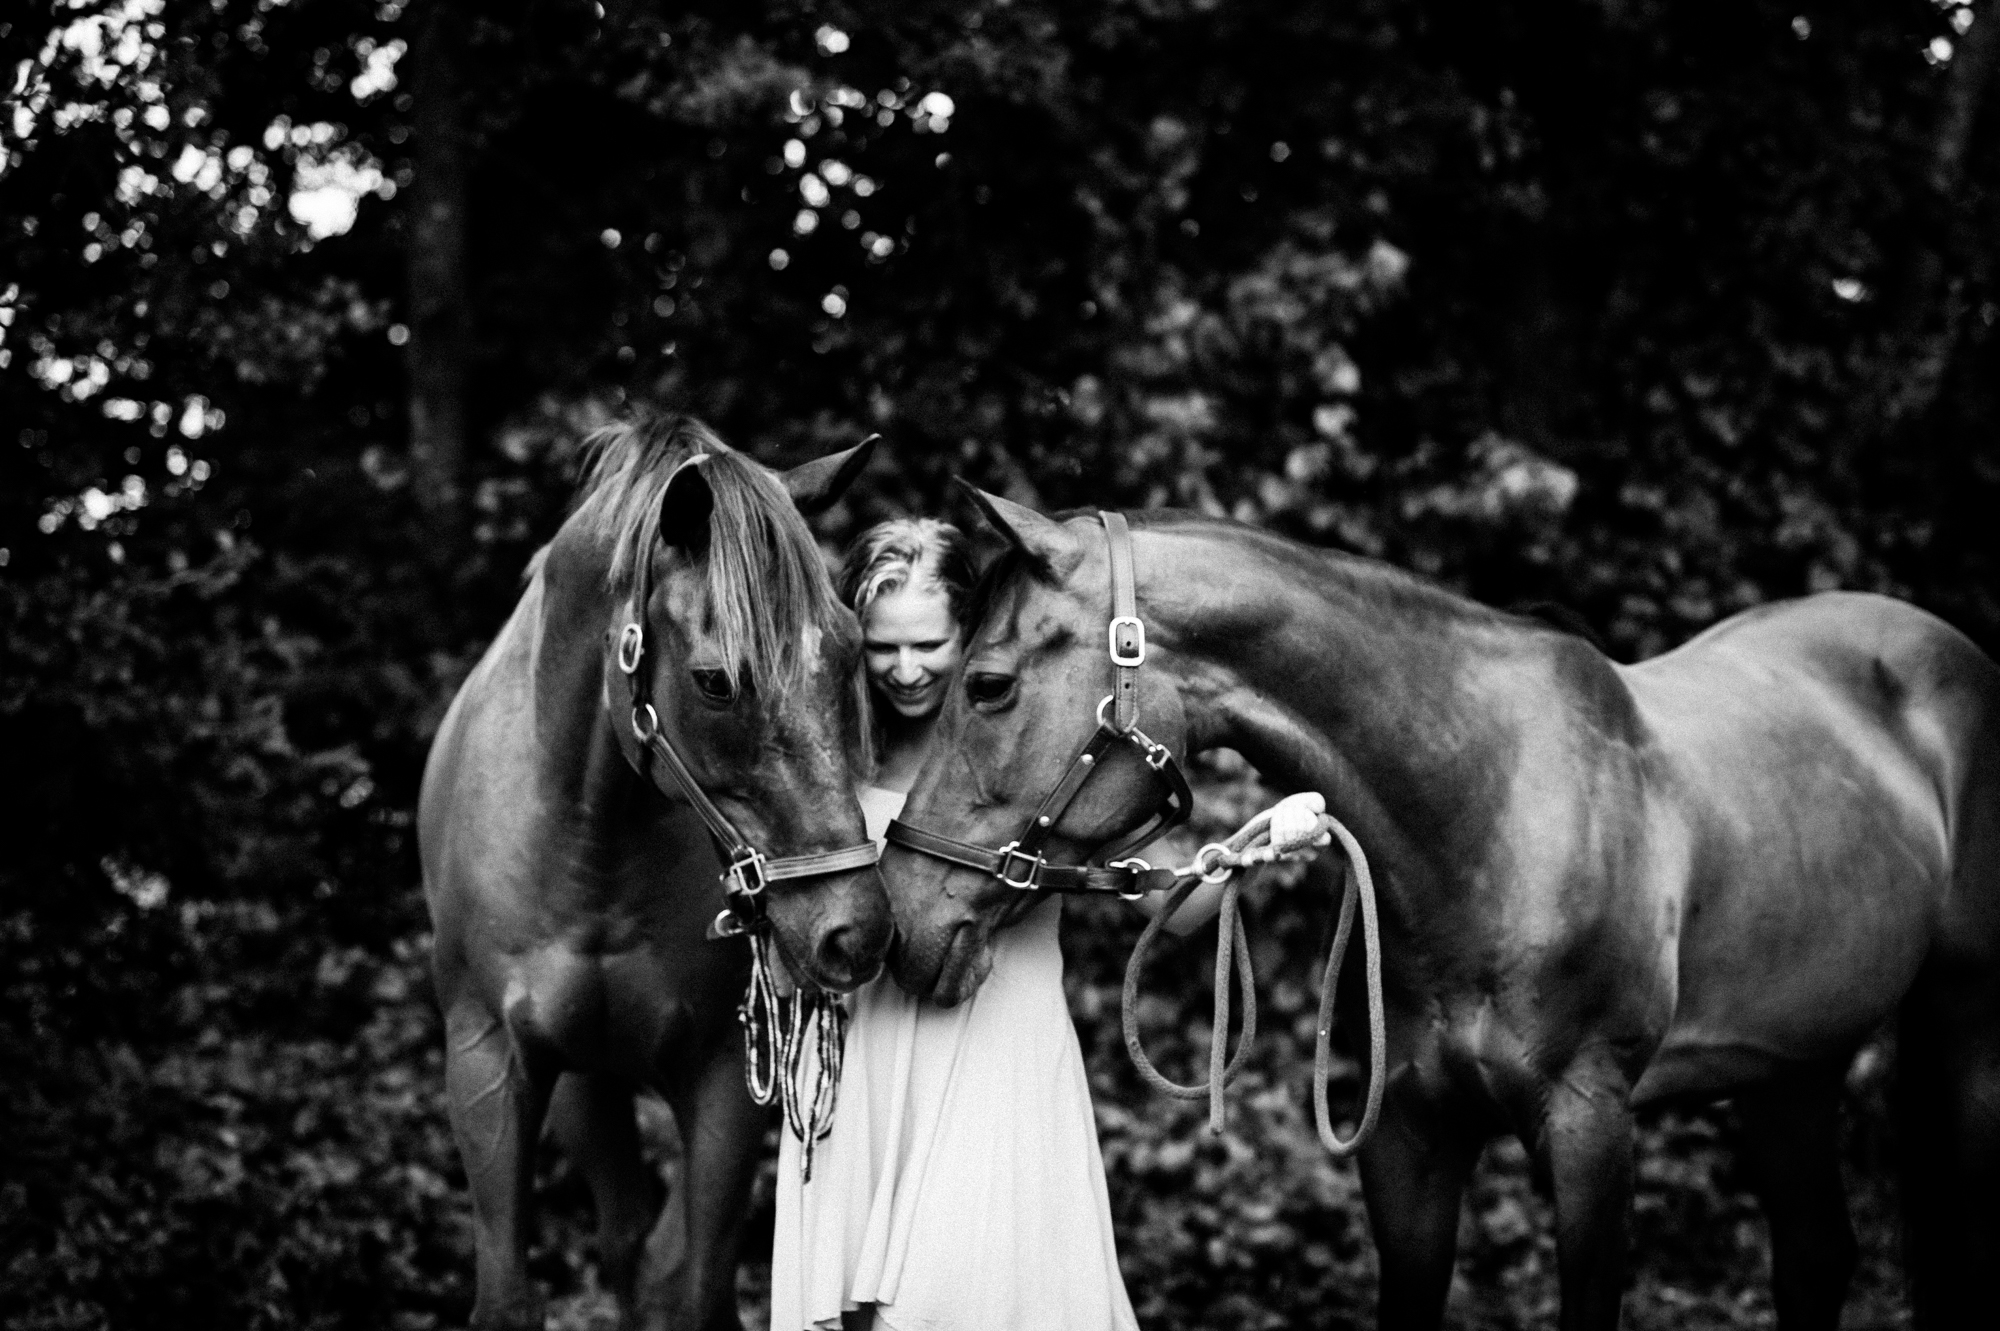 equestrian lifestyle portraits in tryon nc